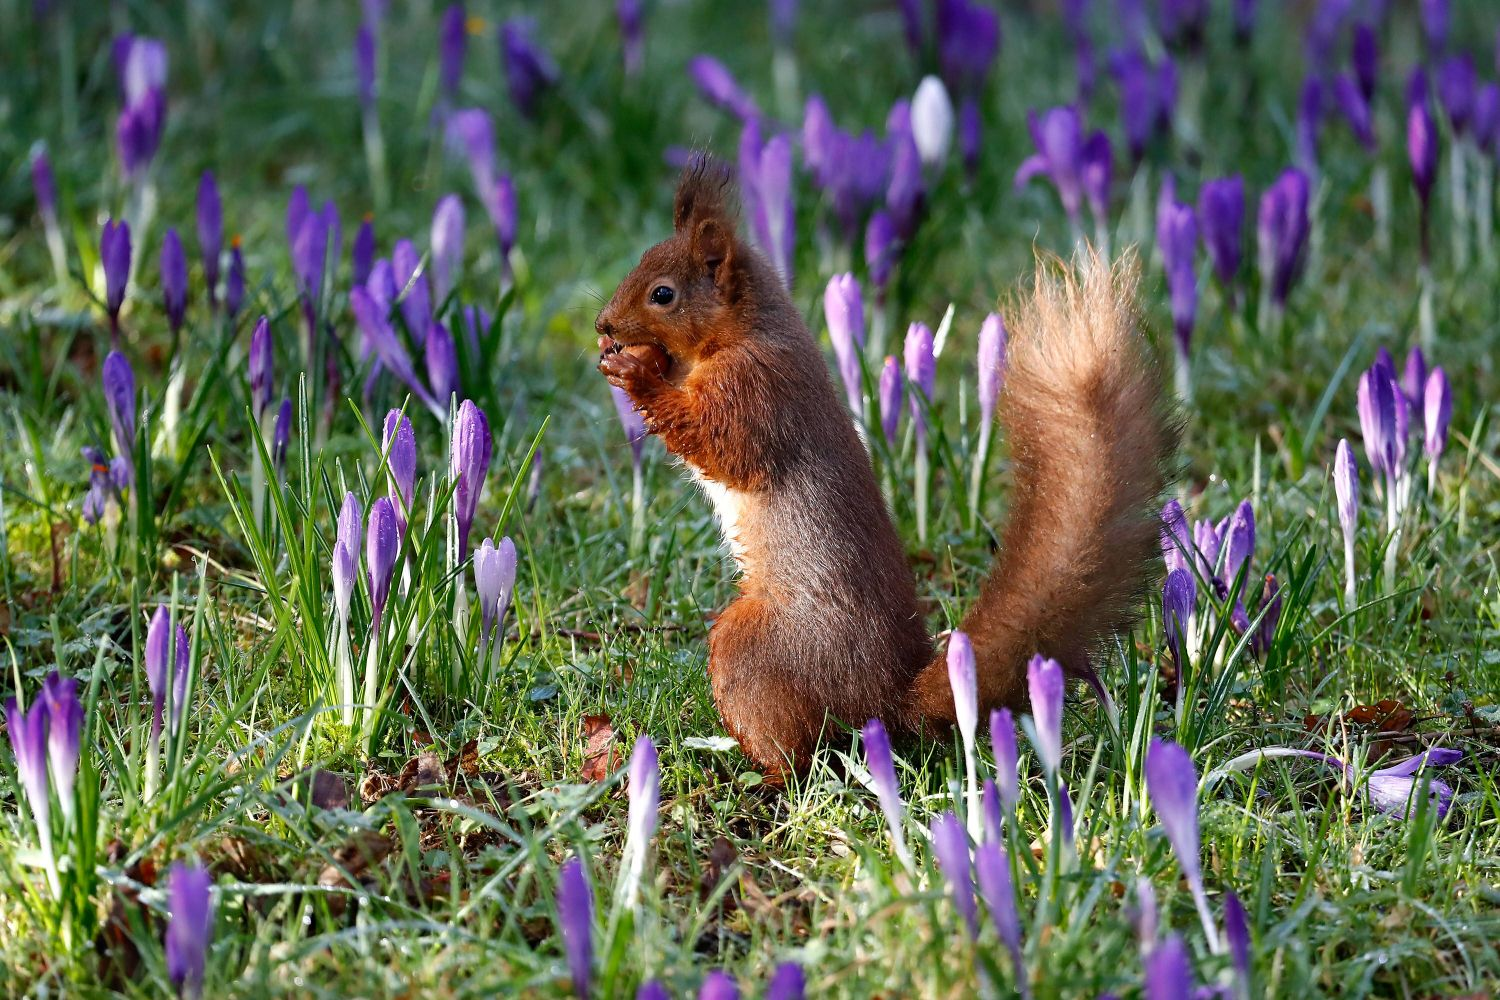 Red Squirrel in a bed of purple crocus